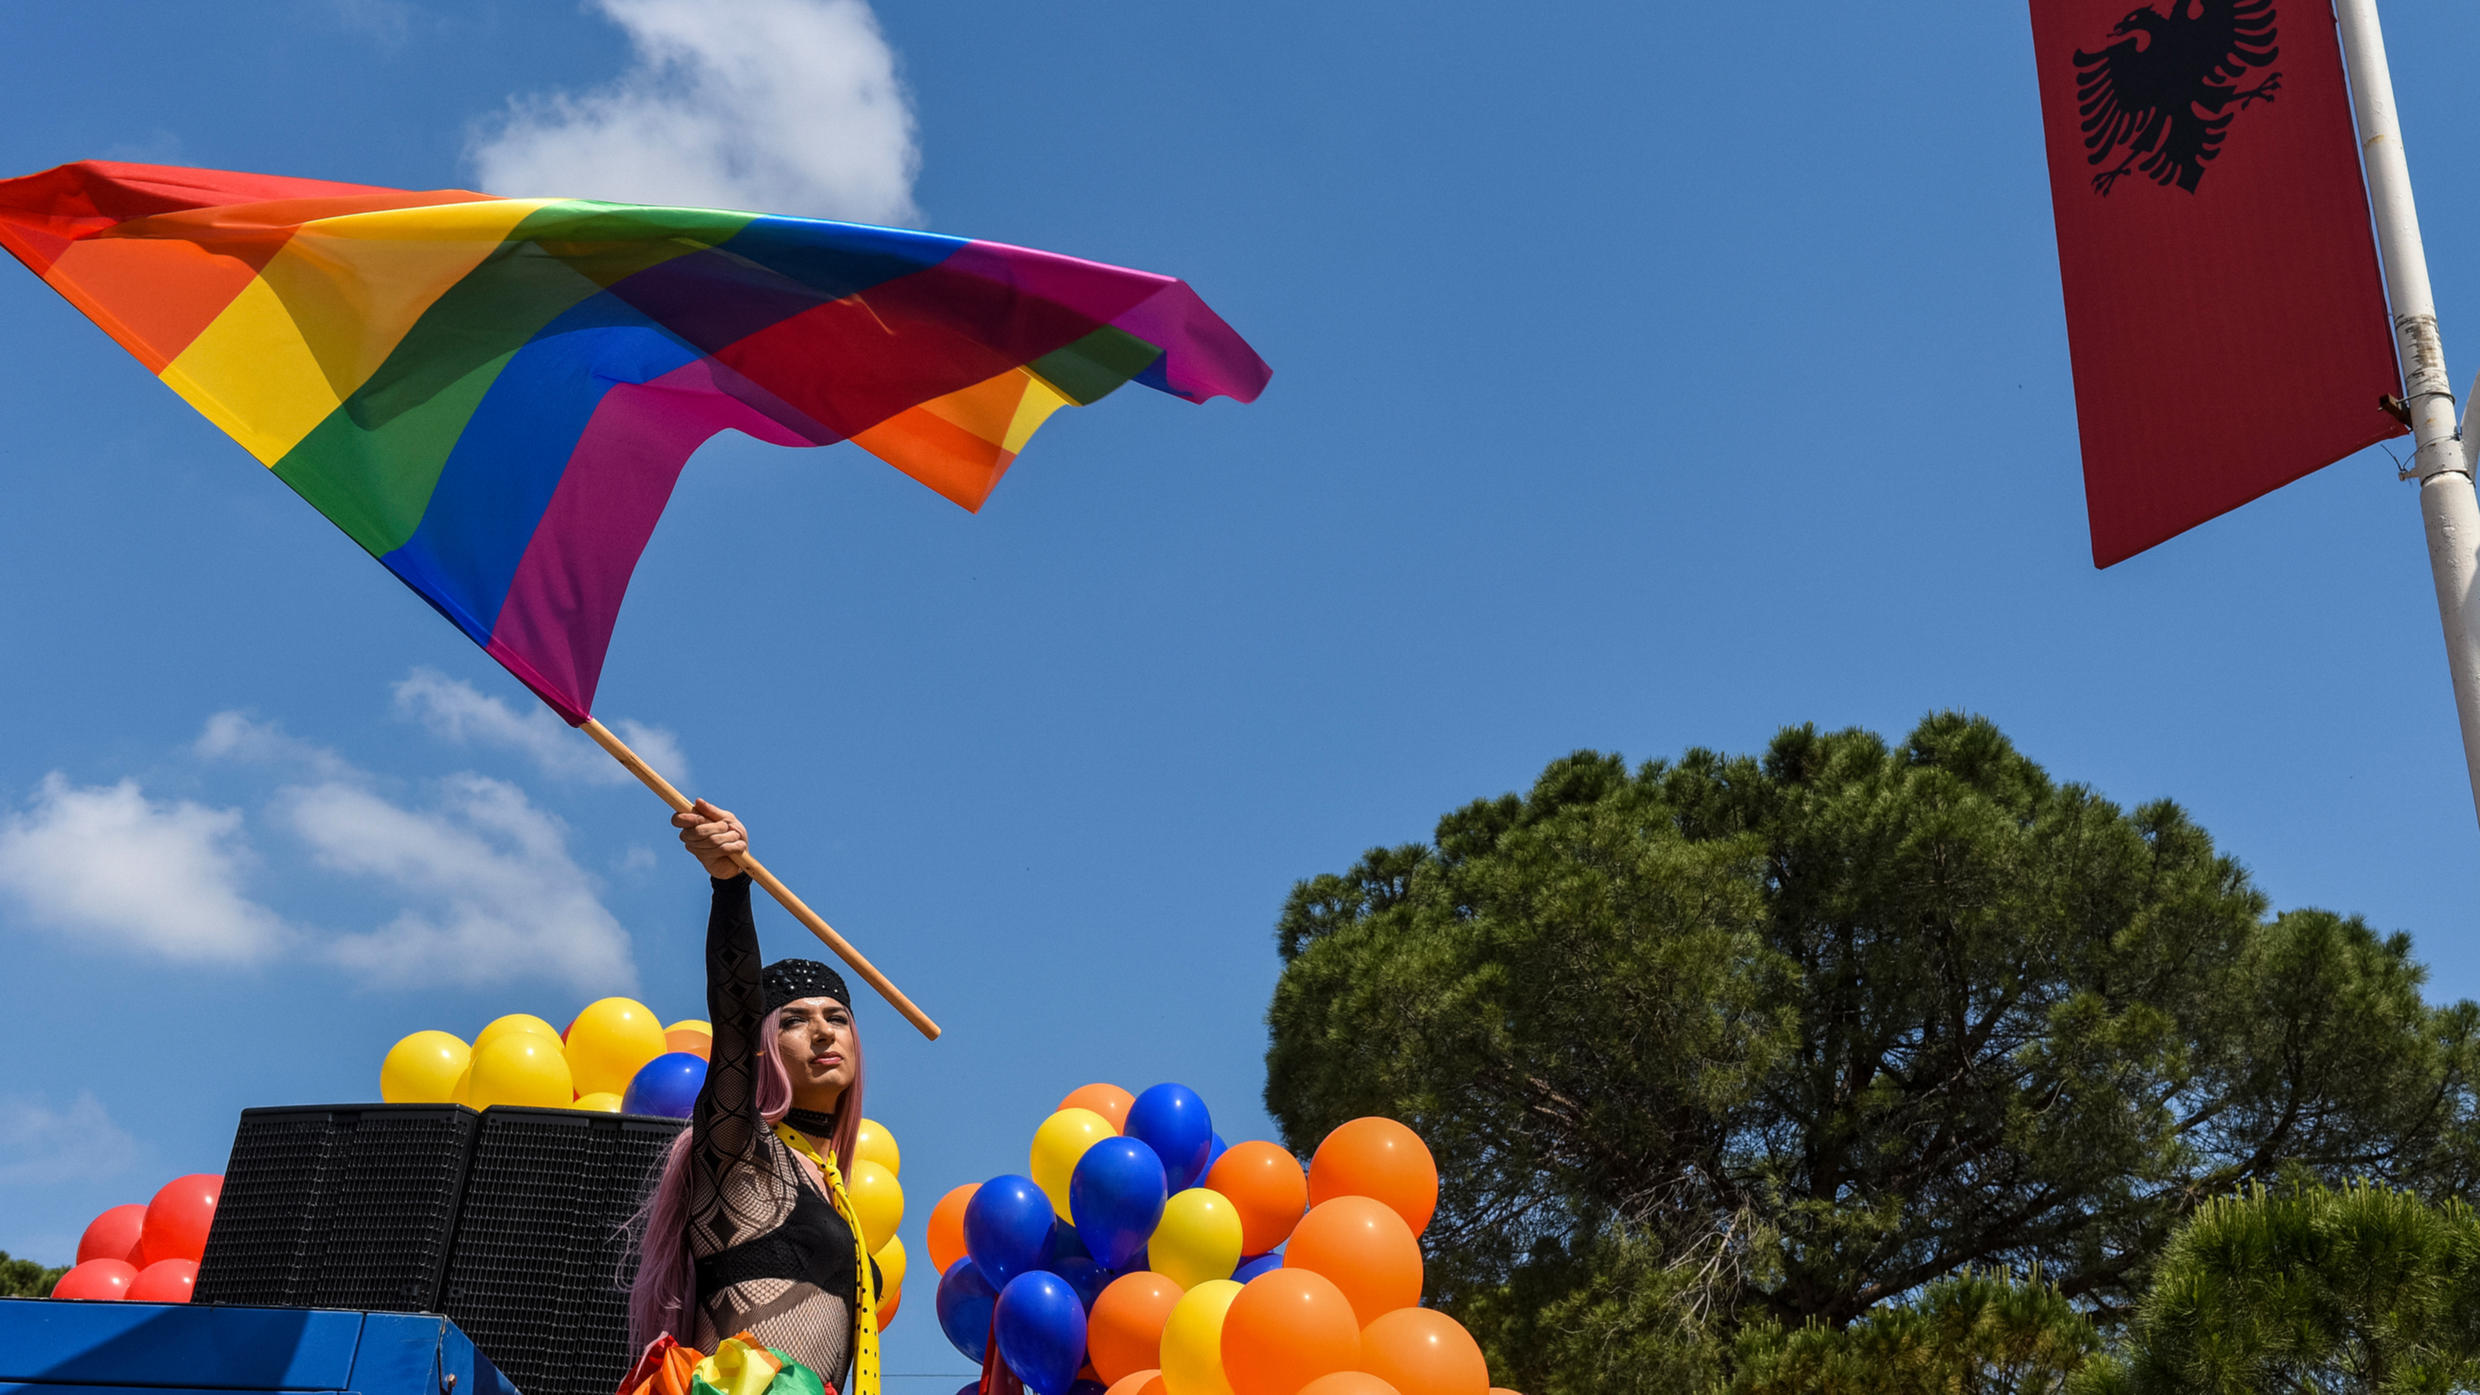 An Albanian LGBT activist waves a rainbow flag as she attends Tirana Gay Pride to mark the International Day Against Homophobia and Transphobia (IDAHOT) on the main boulevard in Tirana on May 13, 2018.